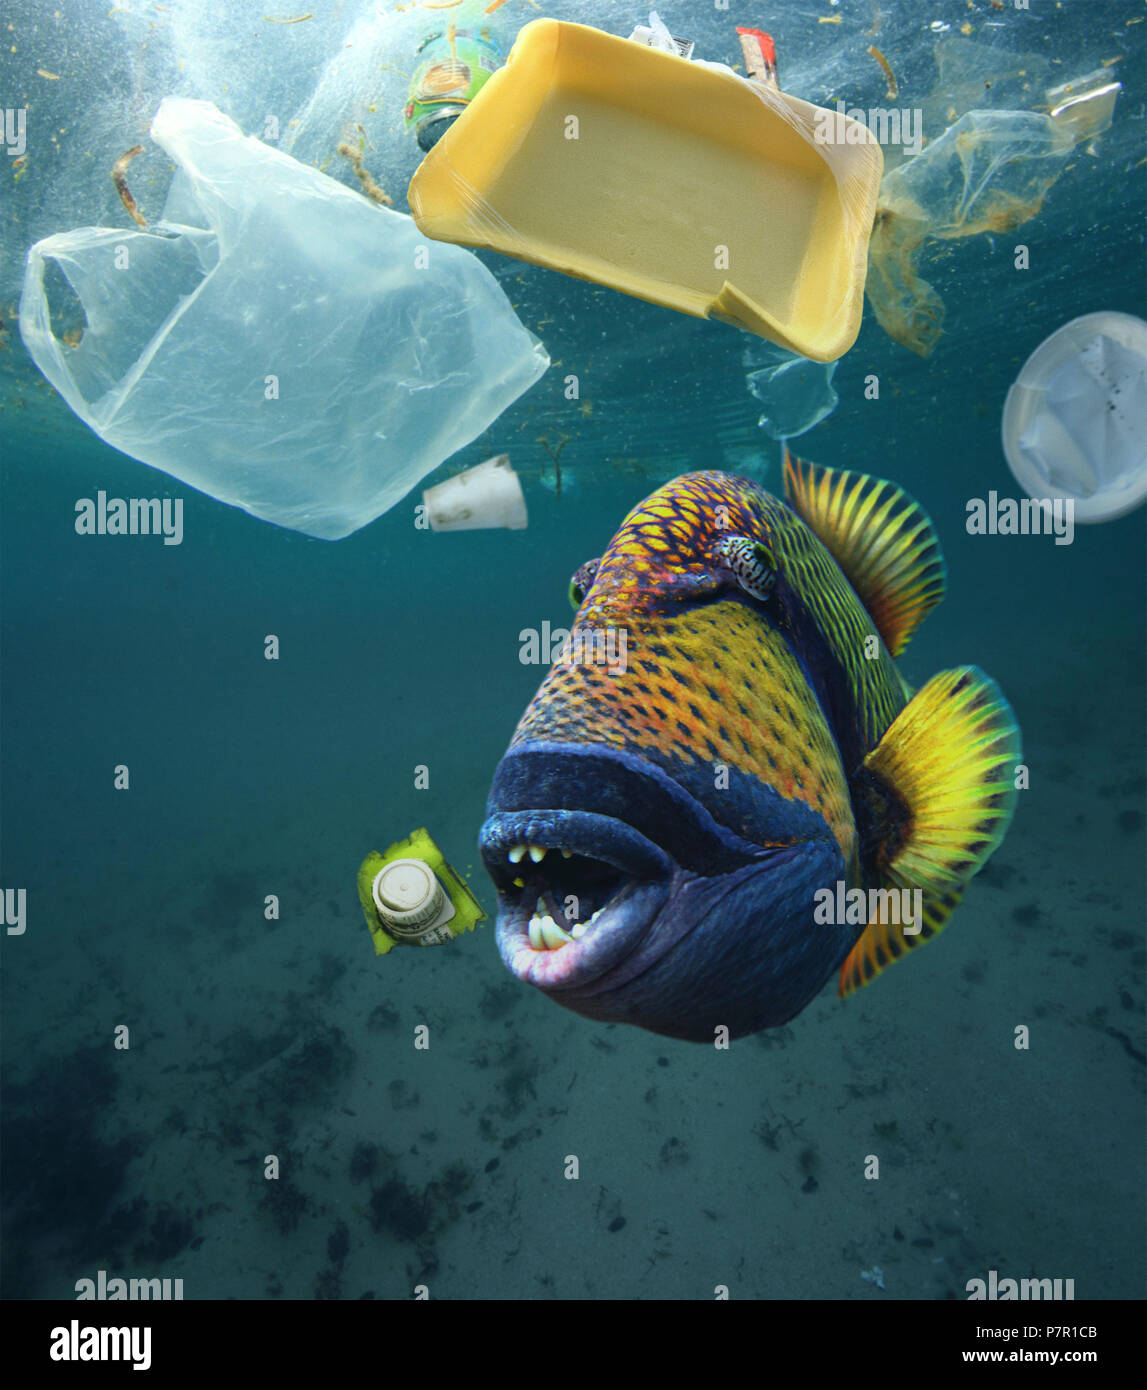 Titan triggerfish, Balistoides viridescens, eating plastic trash. - Stock Image